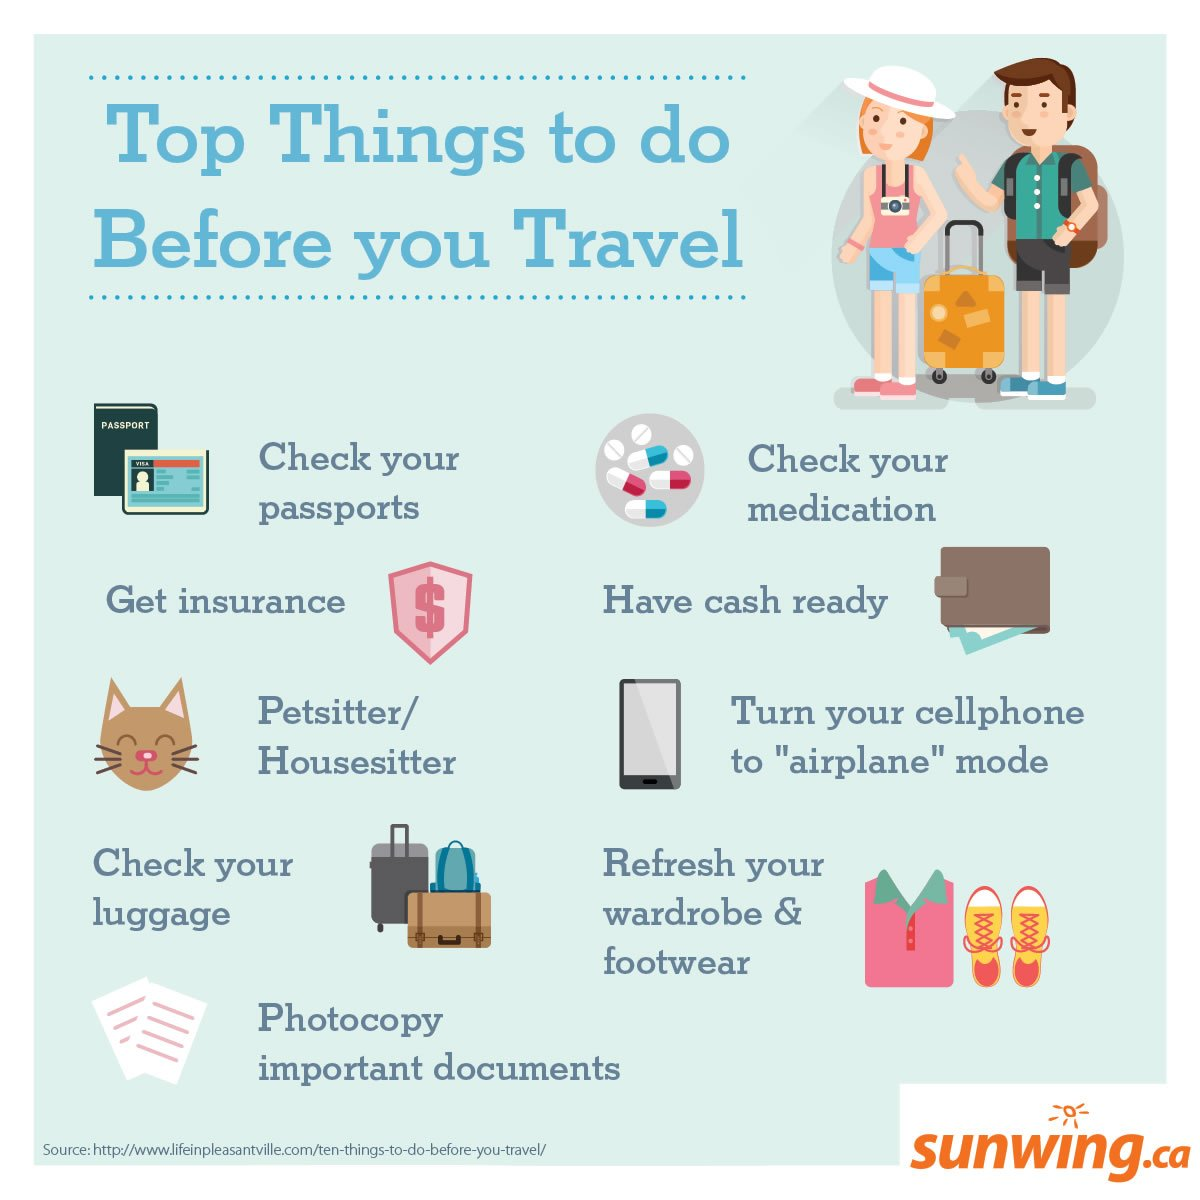 Checklist of travel to-do's to help you plan your next trip! #Infographic #TravelTuesday https://t.co/oDEsgzDP1k